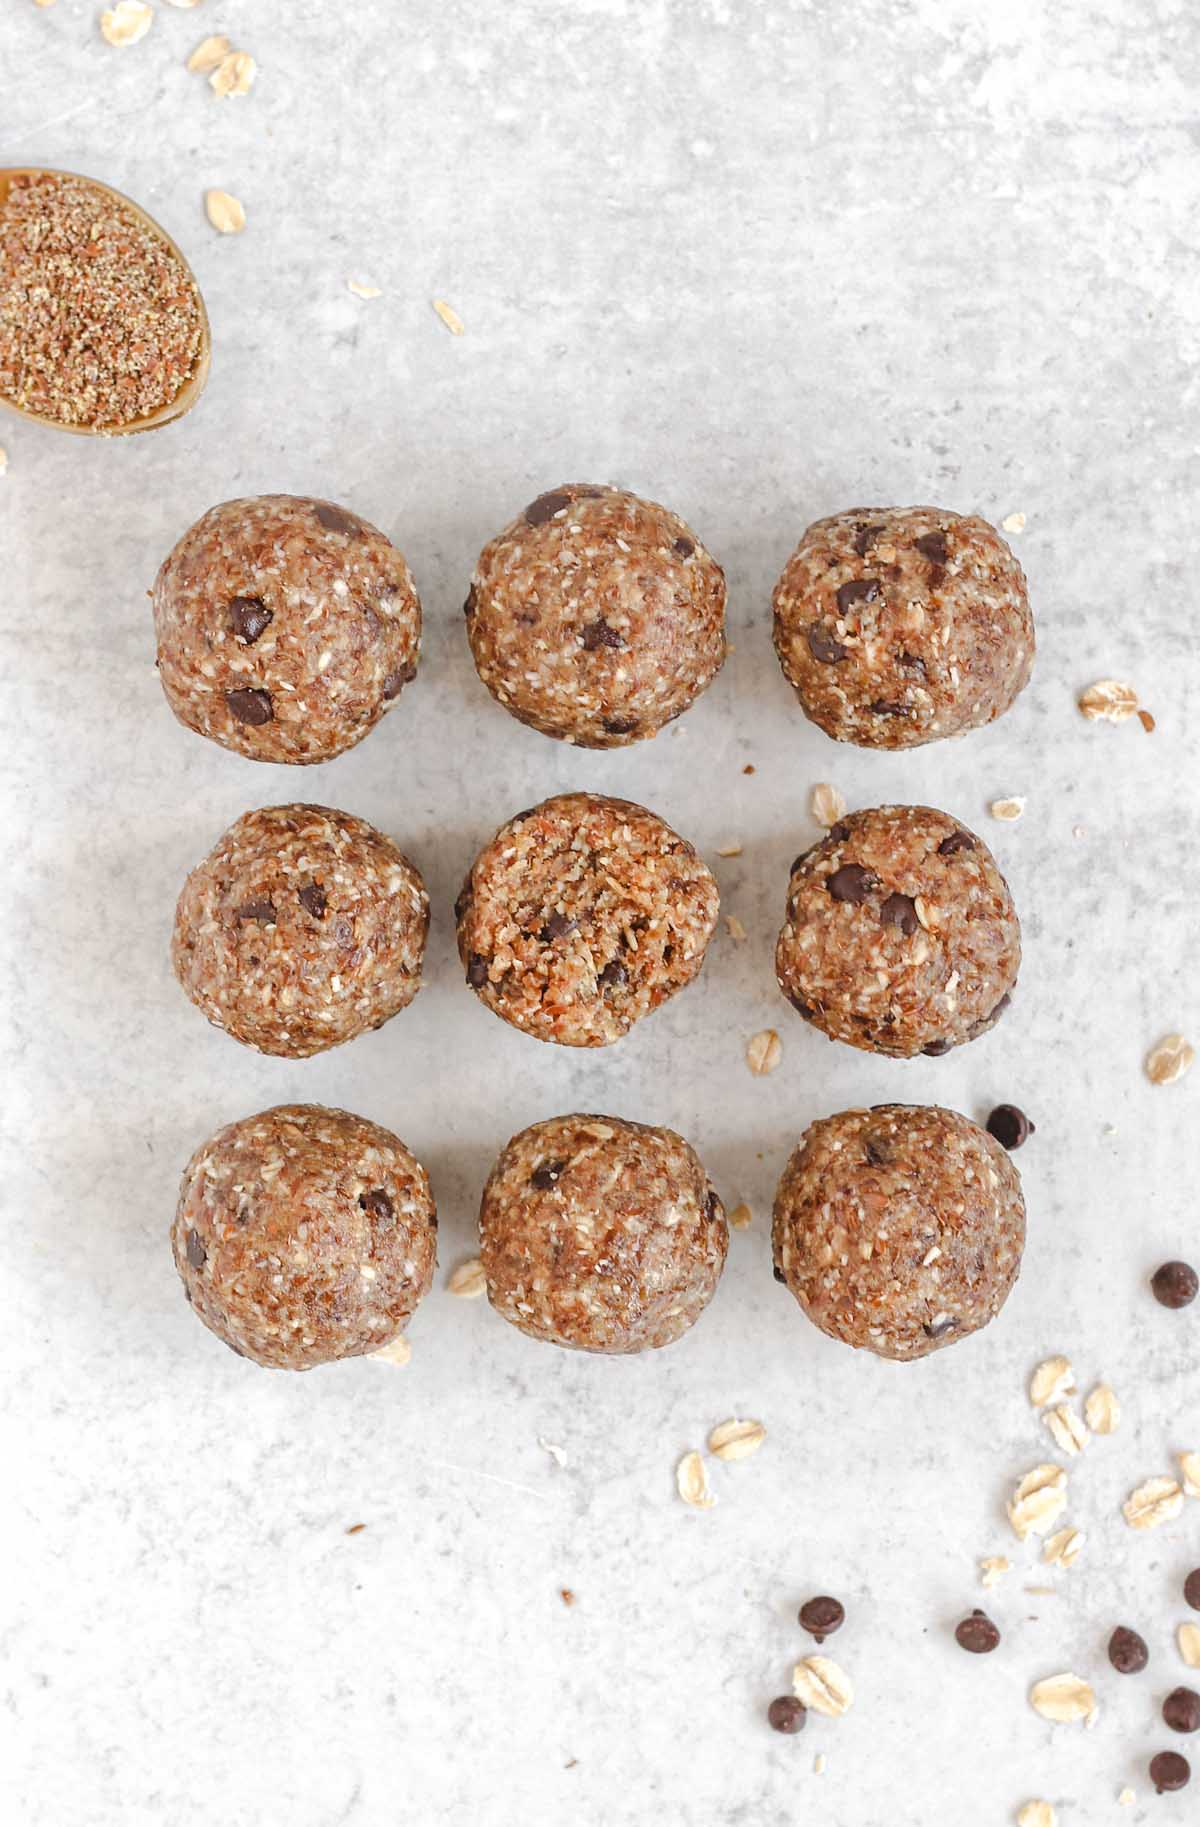 9 nut-free energy balls laid out on a gray surface